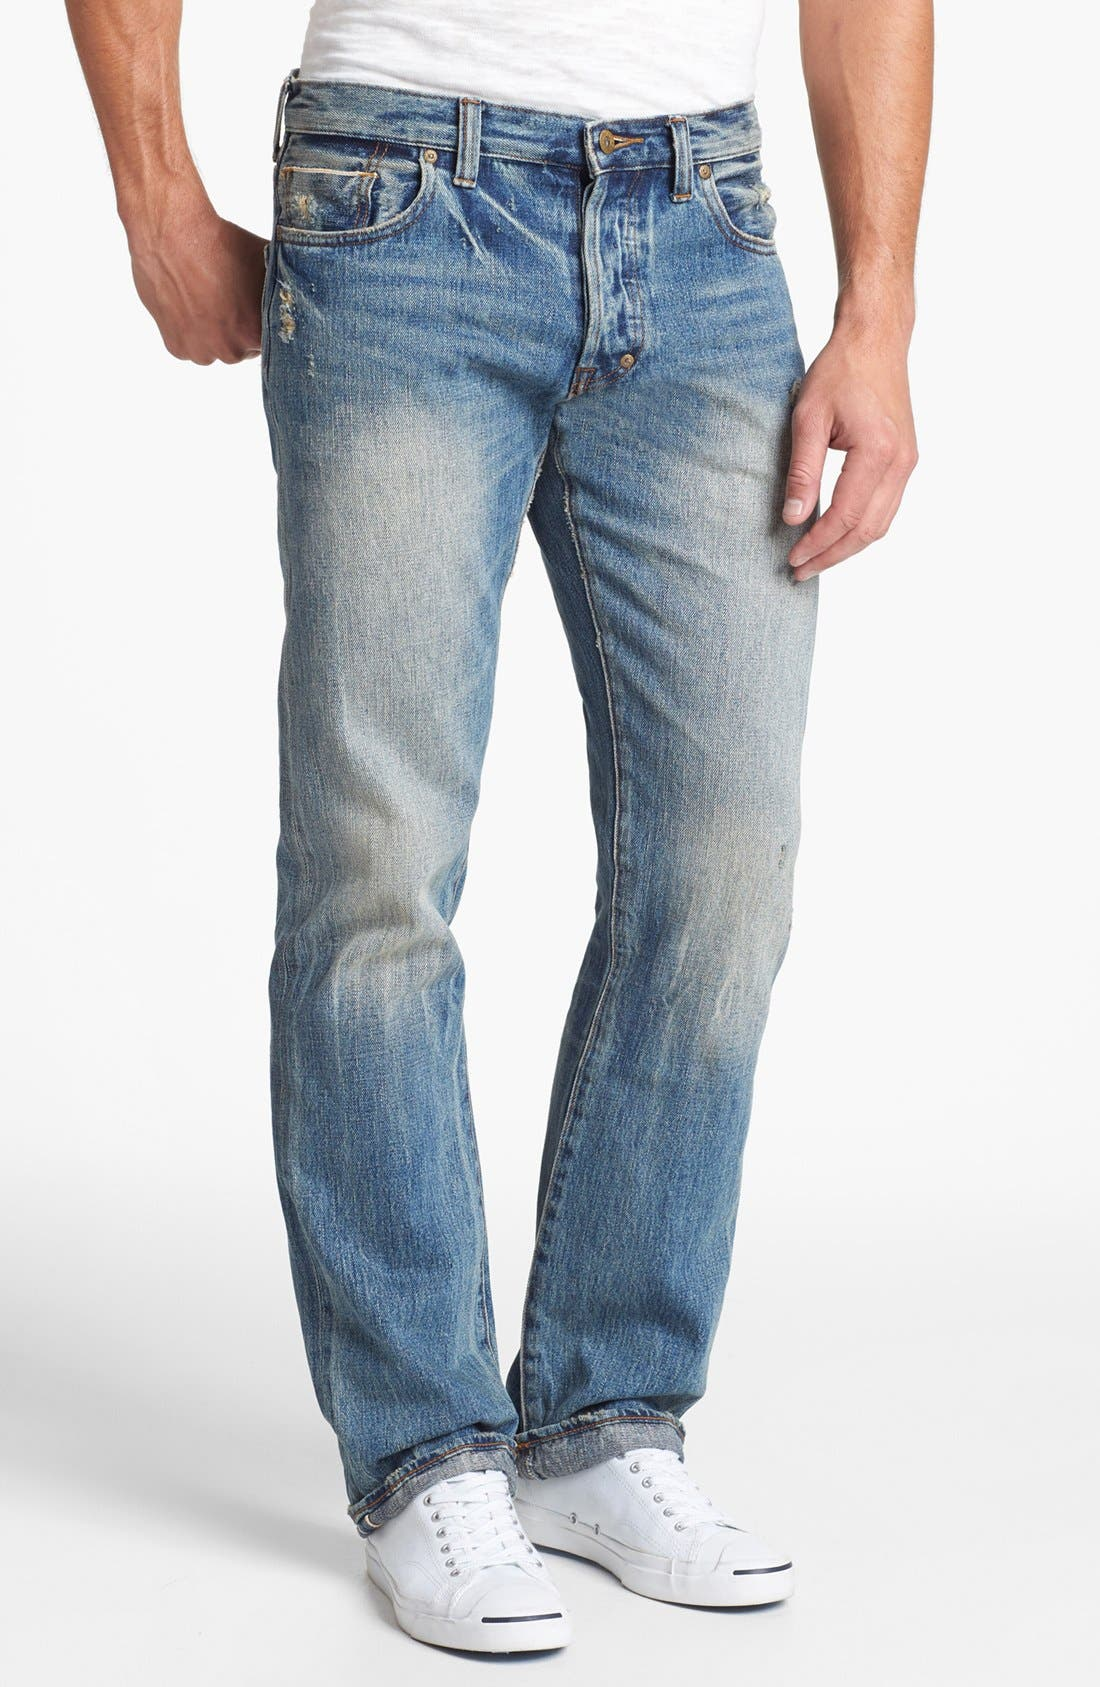 'Barracuda' Straight Leg Selvedge Jeans,                         Main,                         color, 5 Year Wash